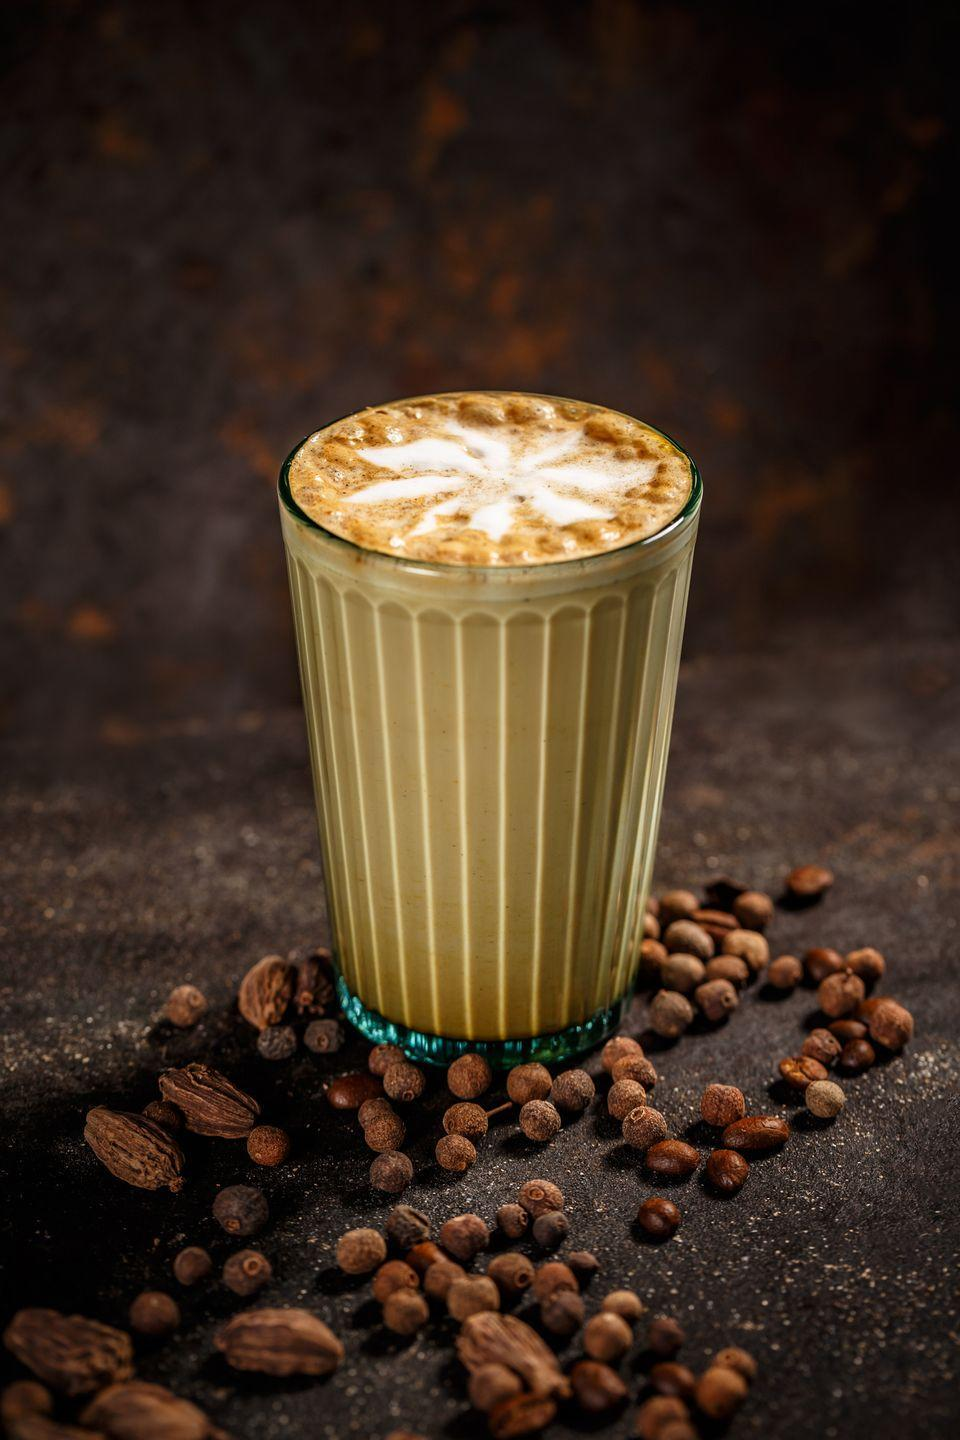 "<p>This coffee shop favorite combines the spicy sweetness of a chai latte with the extra pick-me-up of an espresso shot. Masala chai is prepared latte-style with frothed milk, and the espresso (or brewed coffee, if you prefer) is added to serve. </p><p><strong>Pro tip:</strong> A dirty chai can also be made alcoholic with coffee liqueur, or chilled over ice. <br></p><p><em><a href=""https://www.hy-vee.com/recipes-ideas/recipes/dirty-chai-latte"" rel=""nofollow noopener"" target=""_blank"" data-ylk=""slk:Get the recipe for Dirty Chai from Hy-Vee »"" class=""link rapid-noclick-resp"">Get the recipe for Dirty Chai from Hy-Vee »</a></em> </p>"